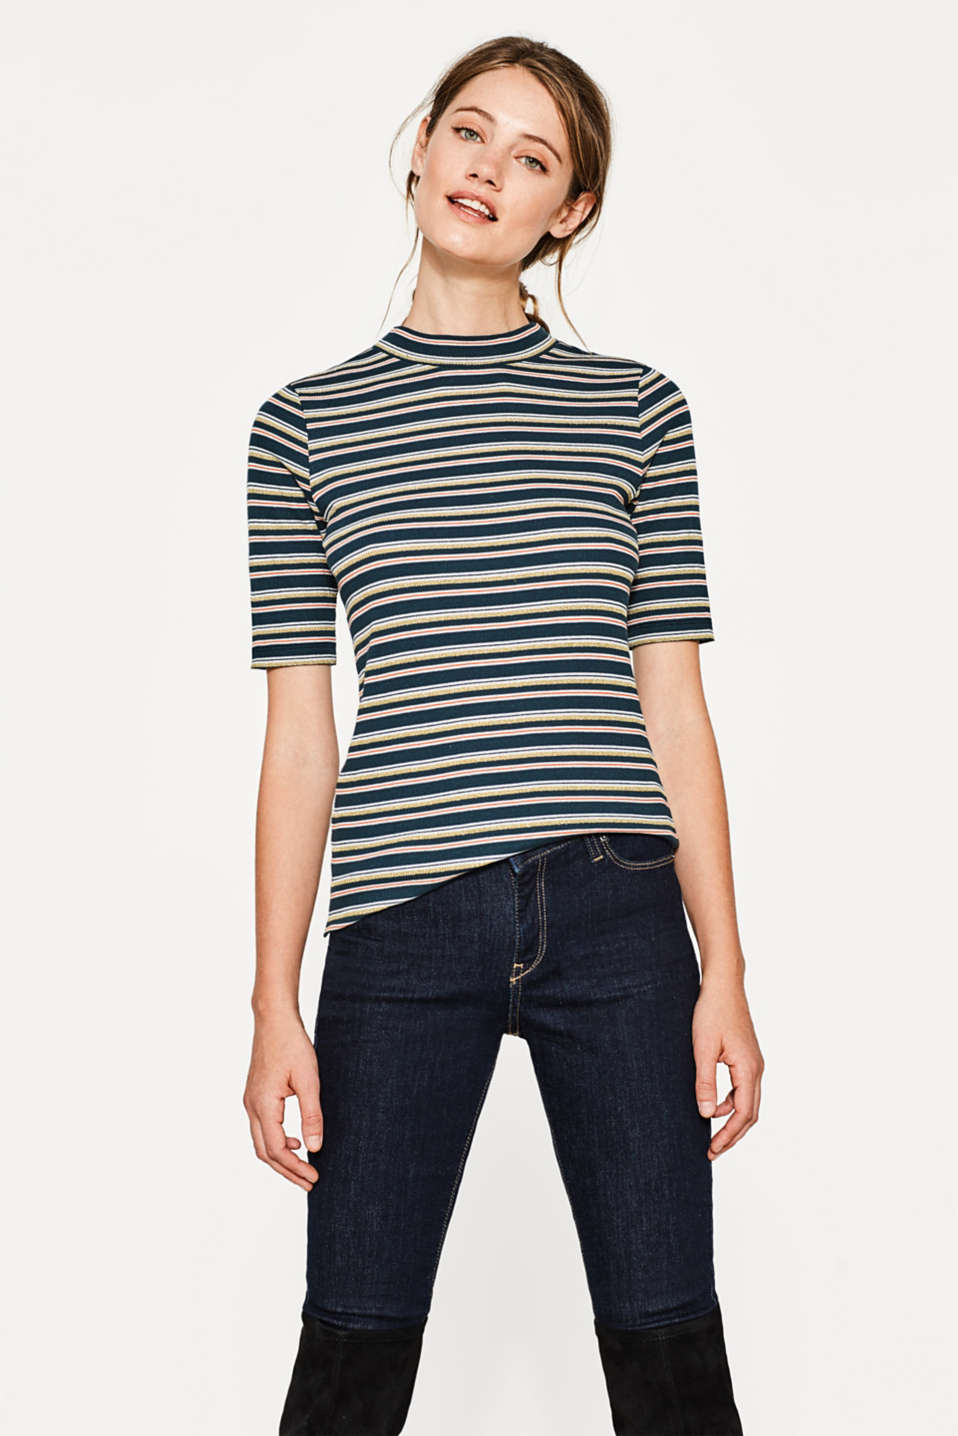 Esprit - Ribbed top with sparkly stripes and stretch